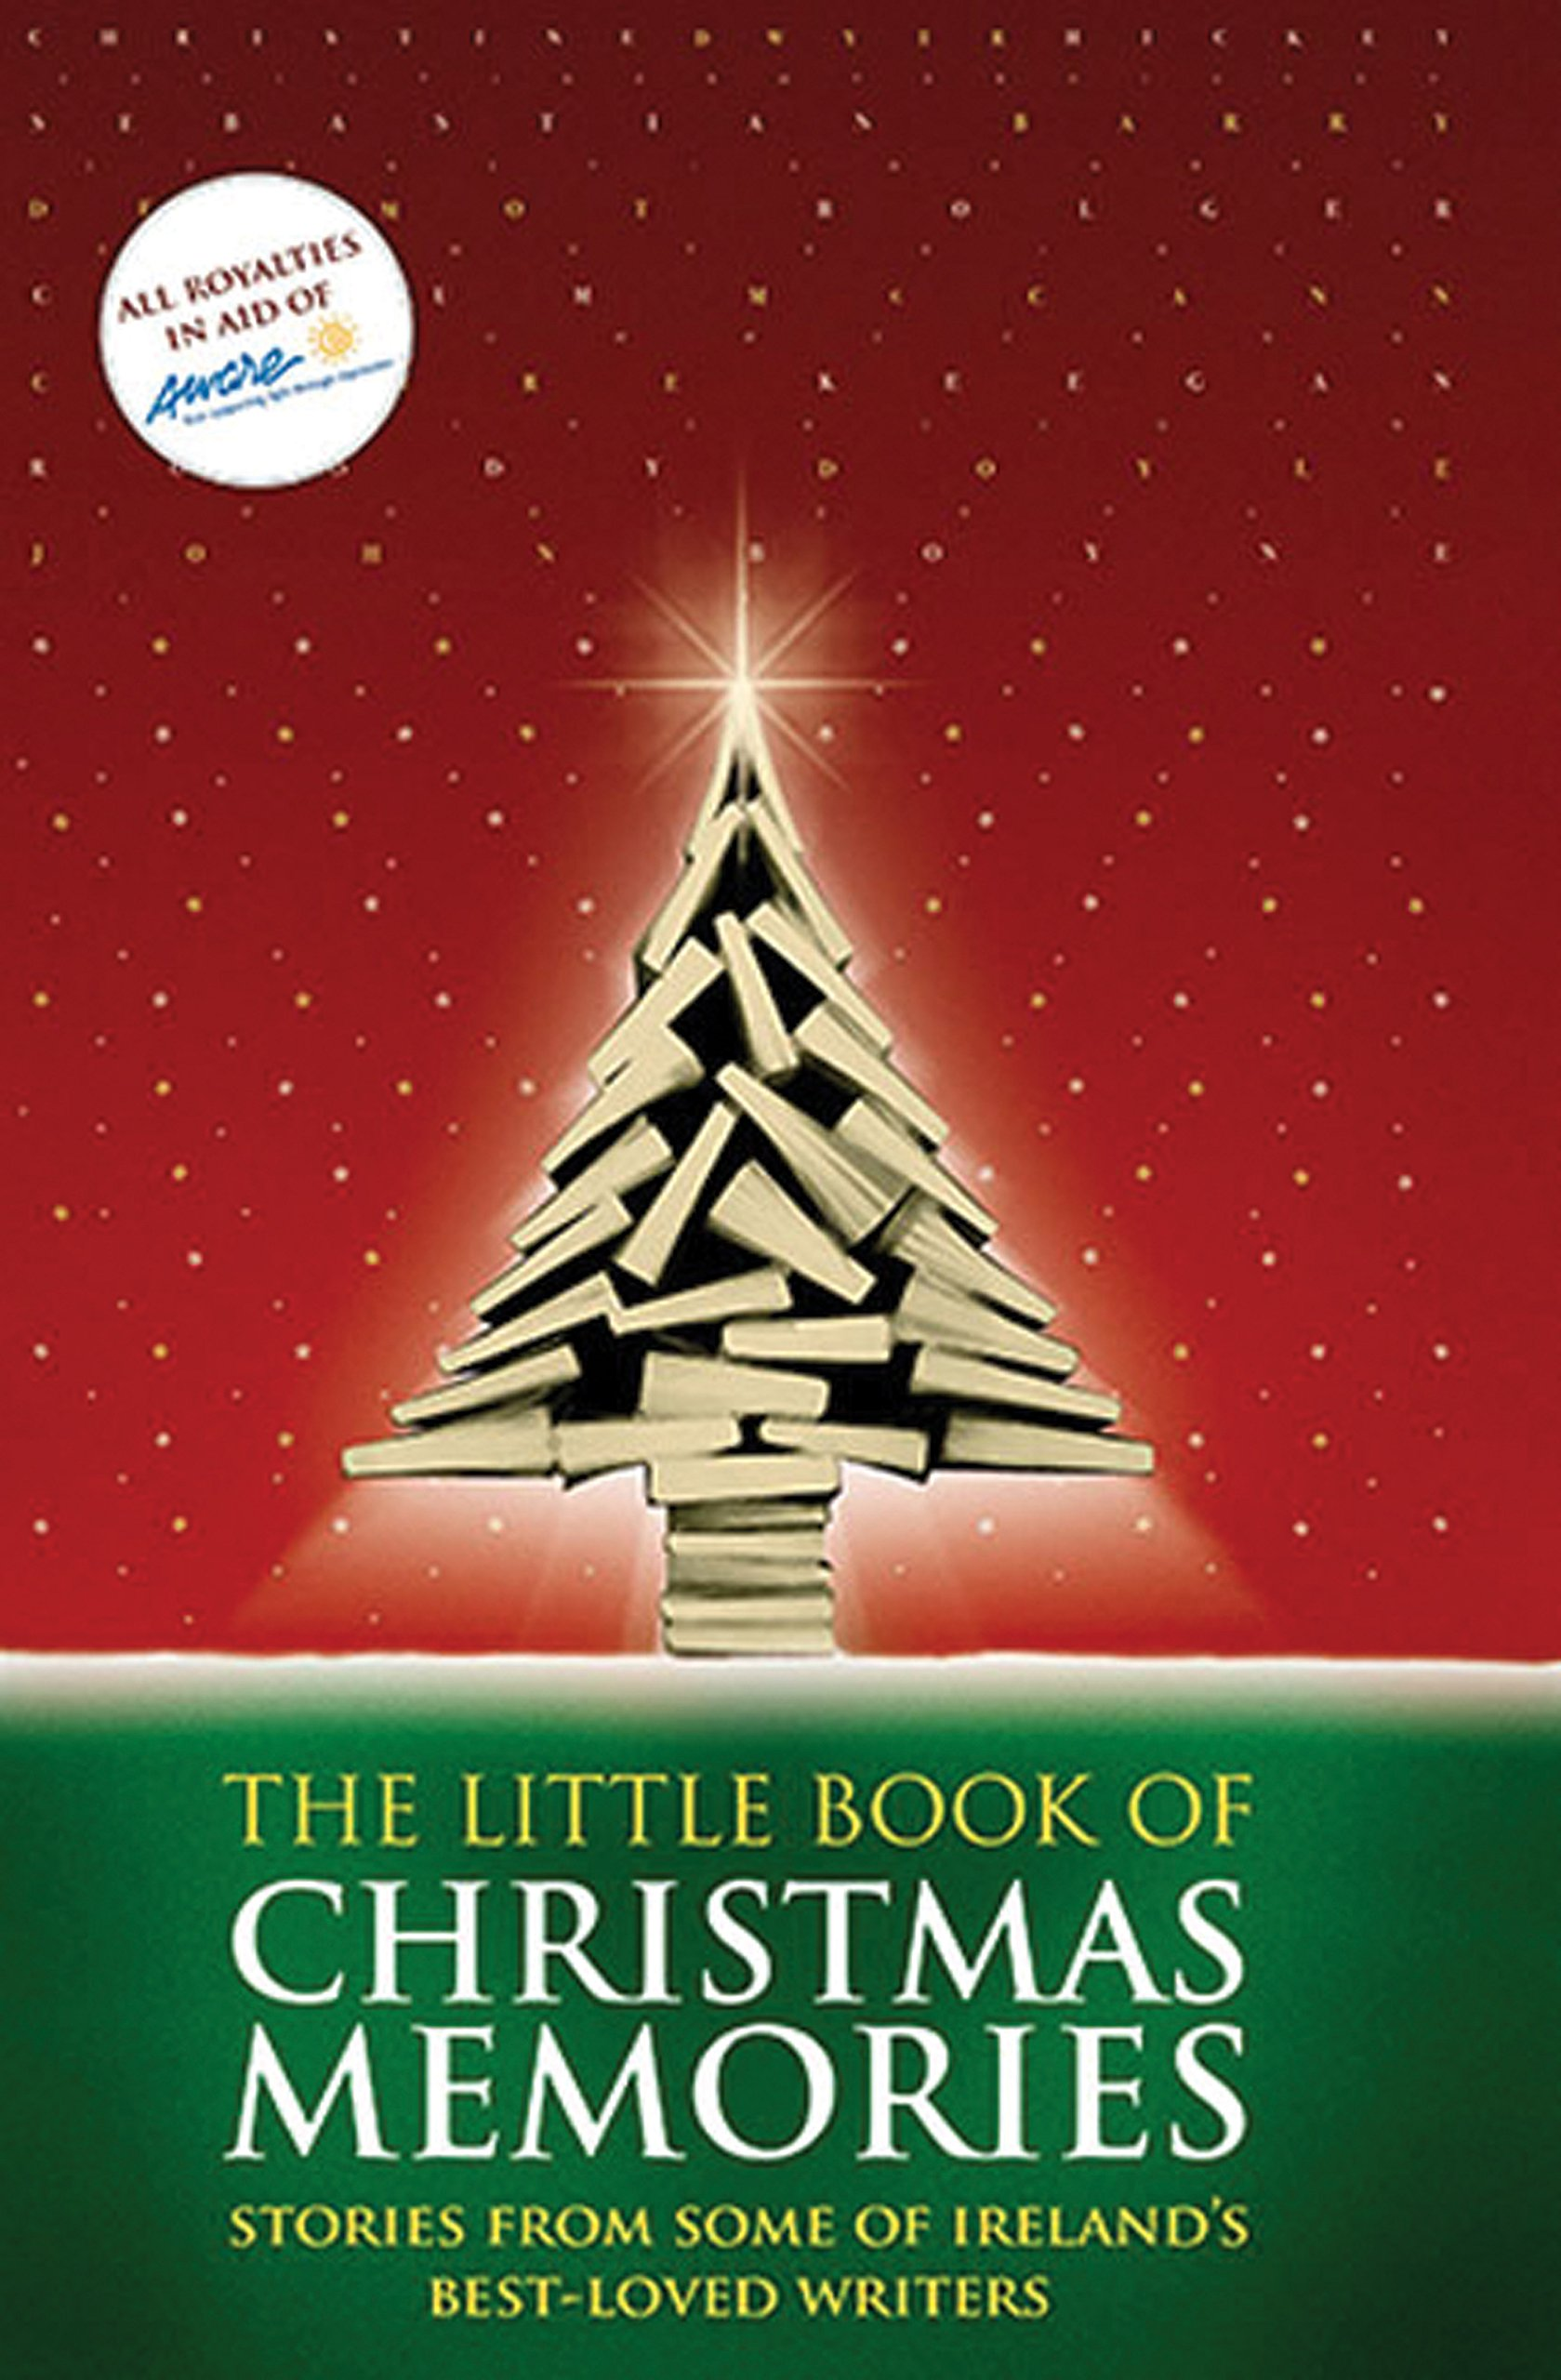 The Little Book Of Christmas Memories  Stories From Some Of Ireland's Best Loved Writers